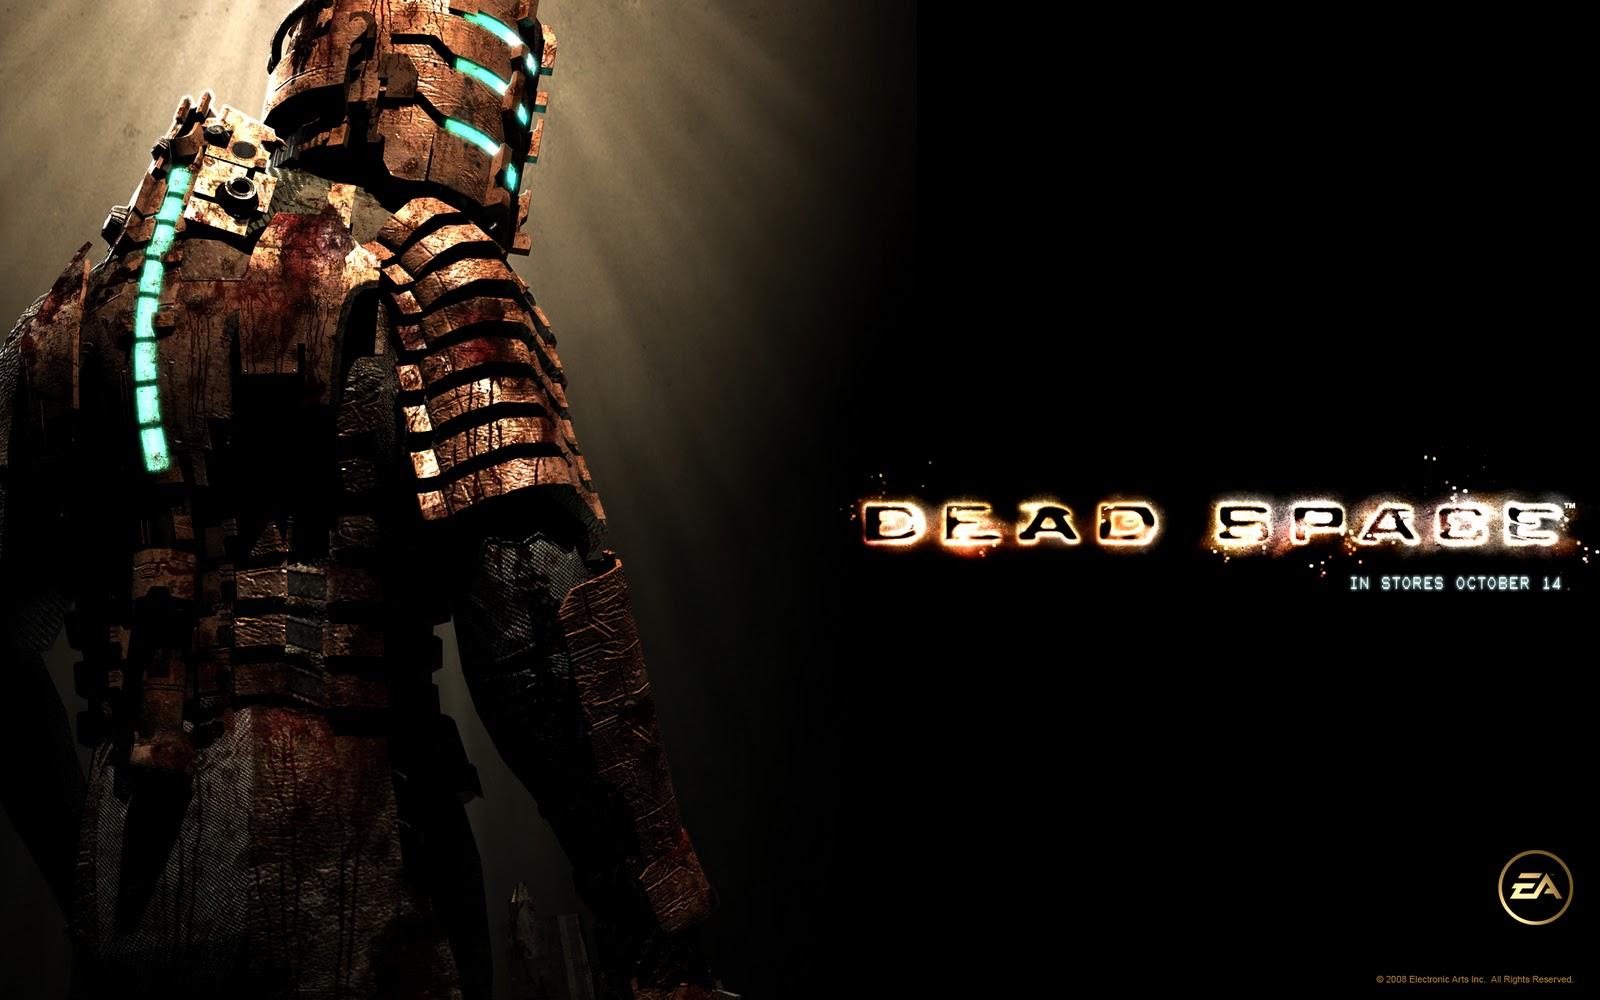 Dead Space 2 Wallpaper HD